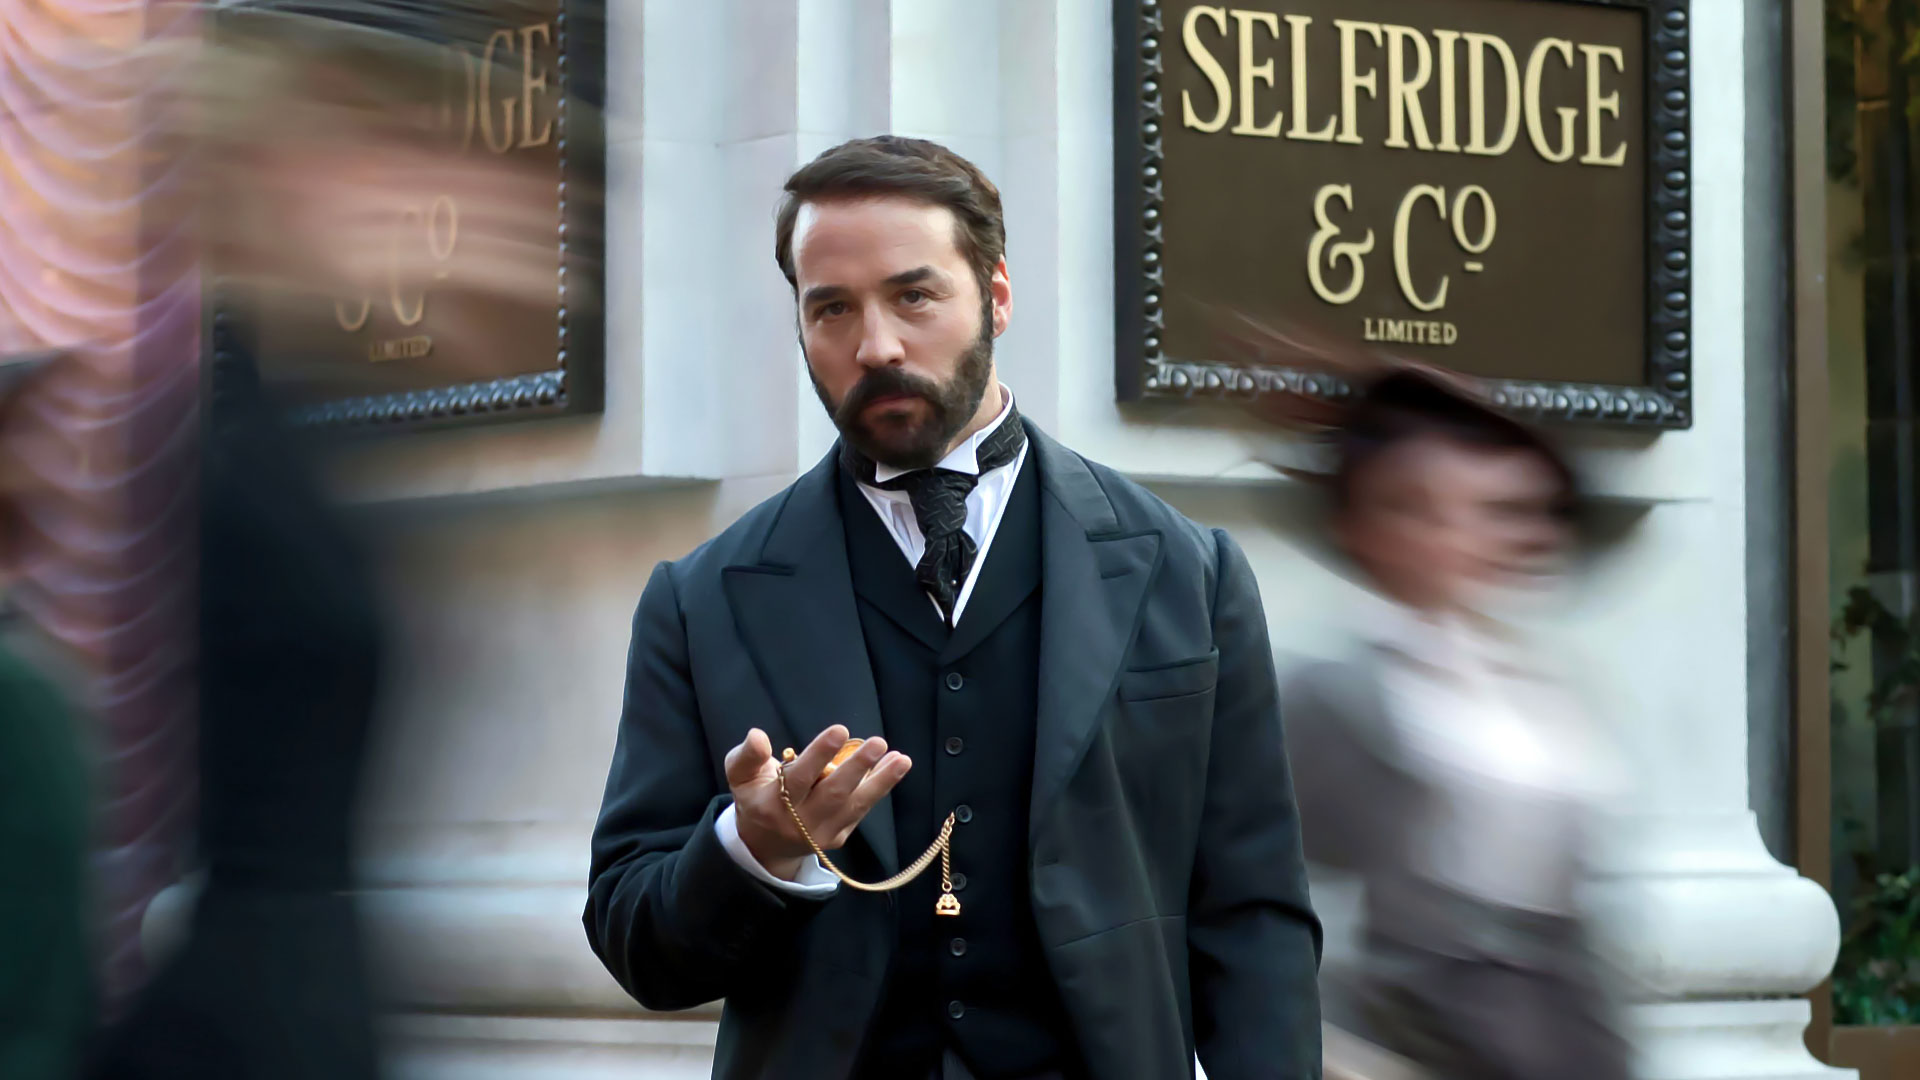 Jeremy Piven as Mr Selfridge in the ITV series